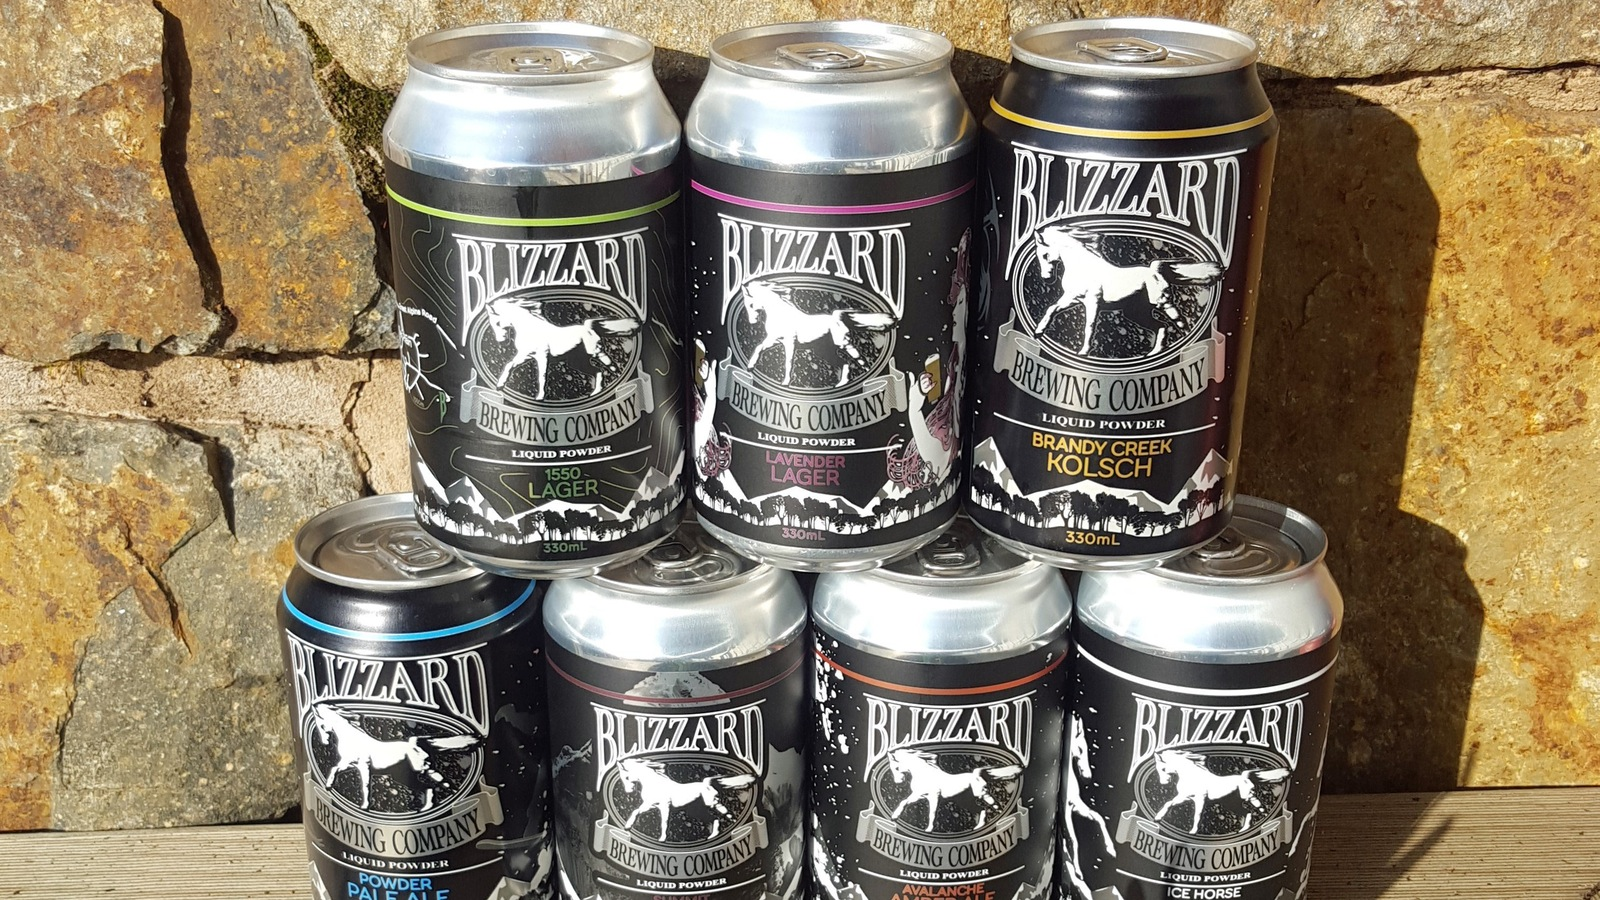 Cans from Blizzard